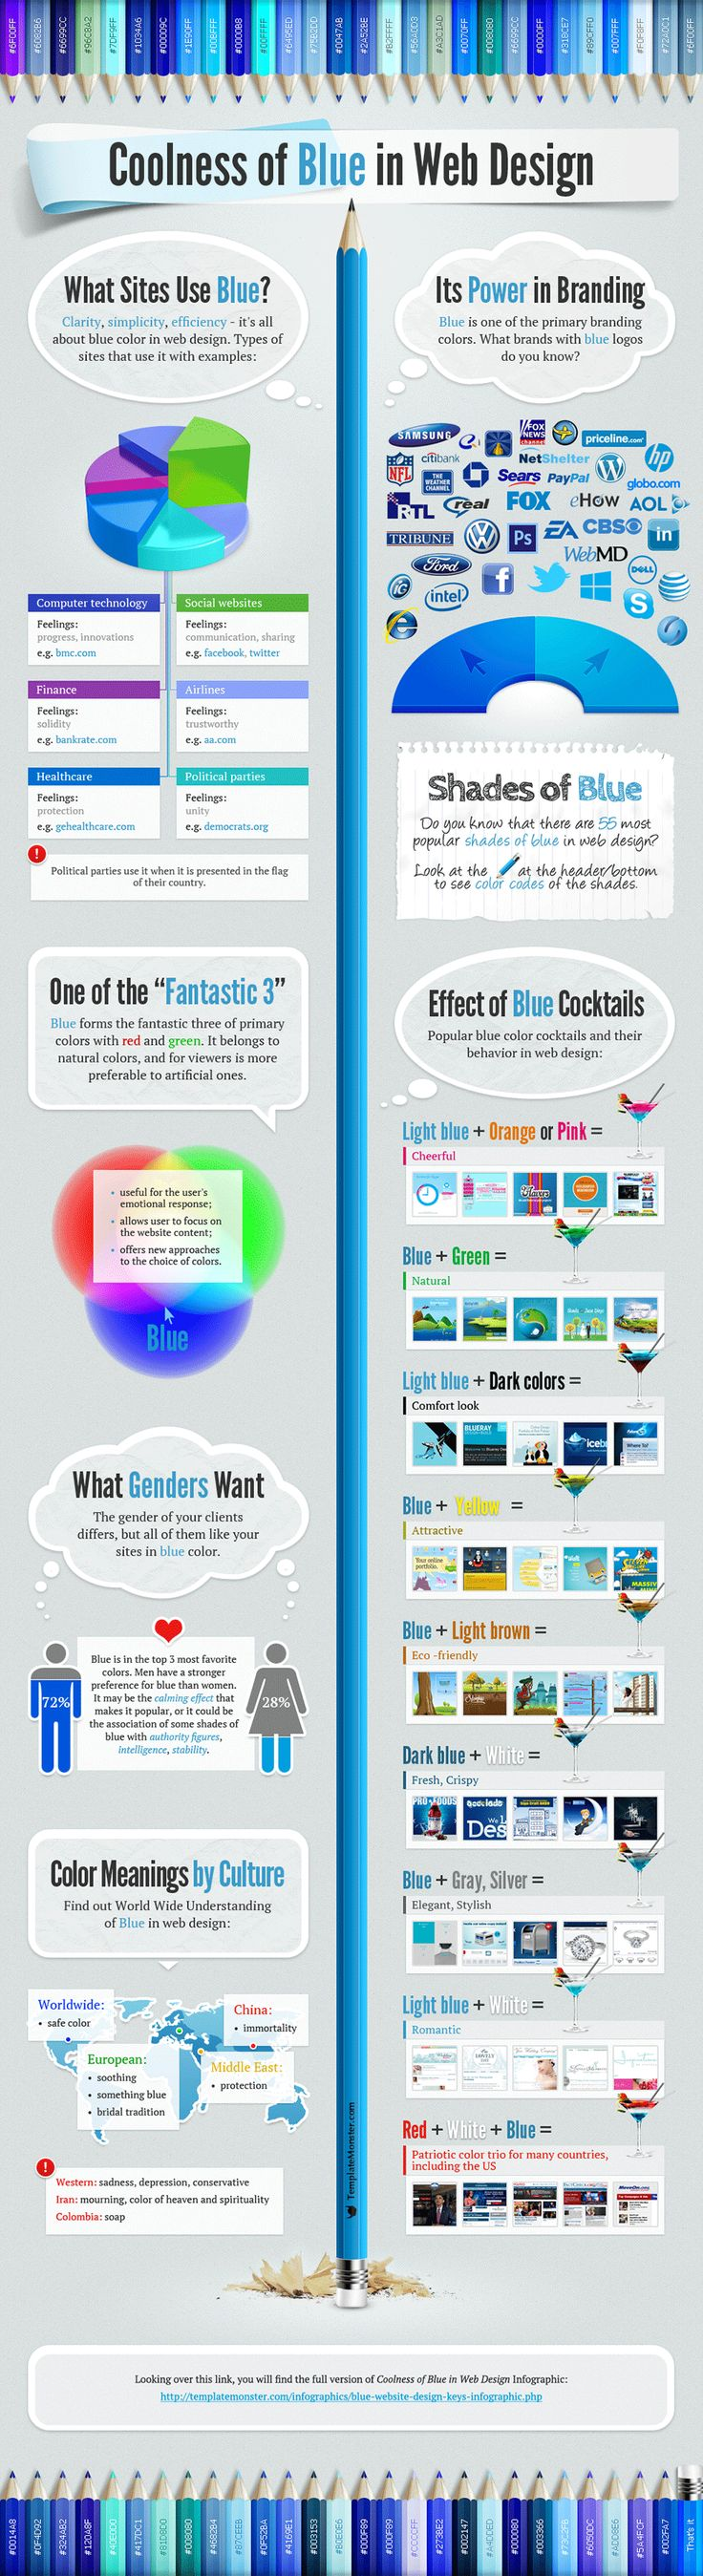 Why Blue Is So Cool In Web Design | Infographic